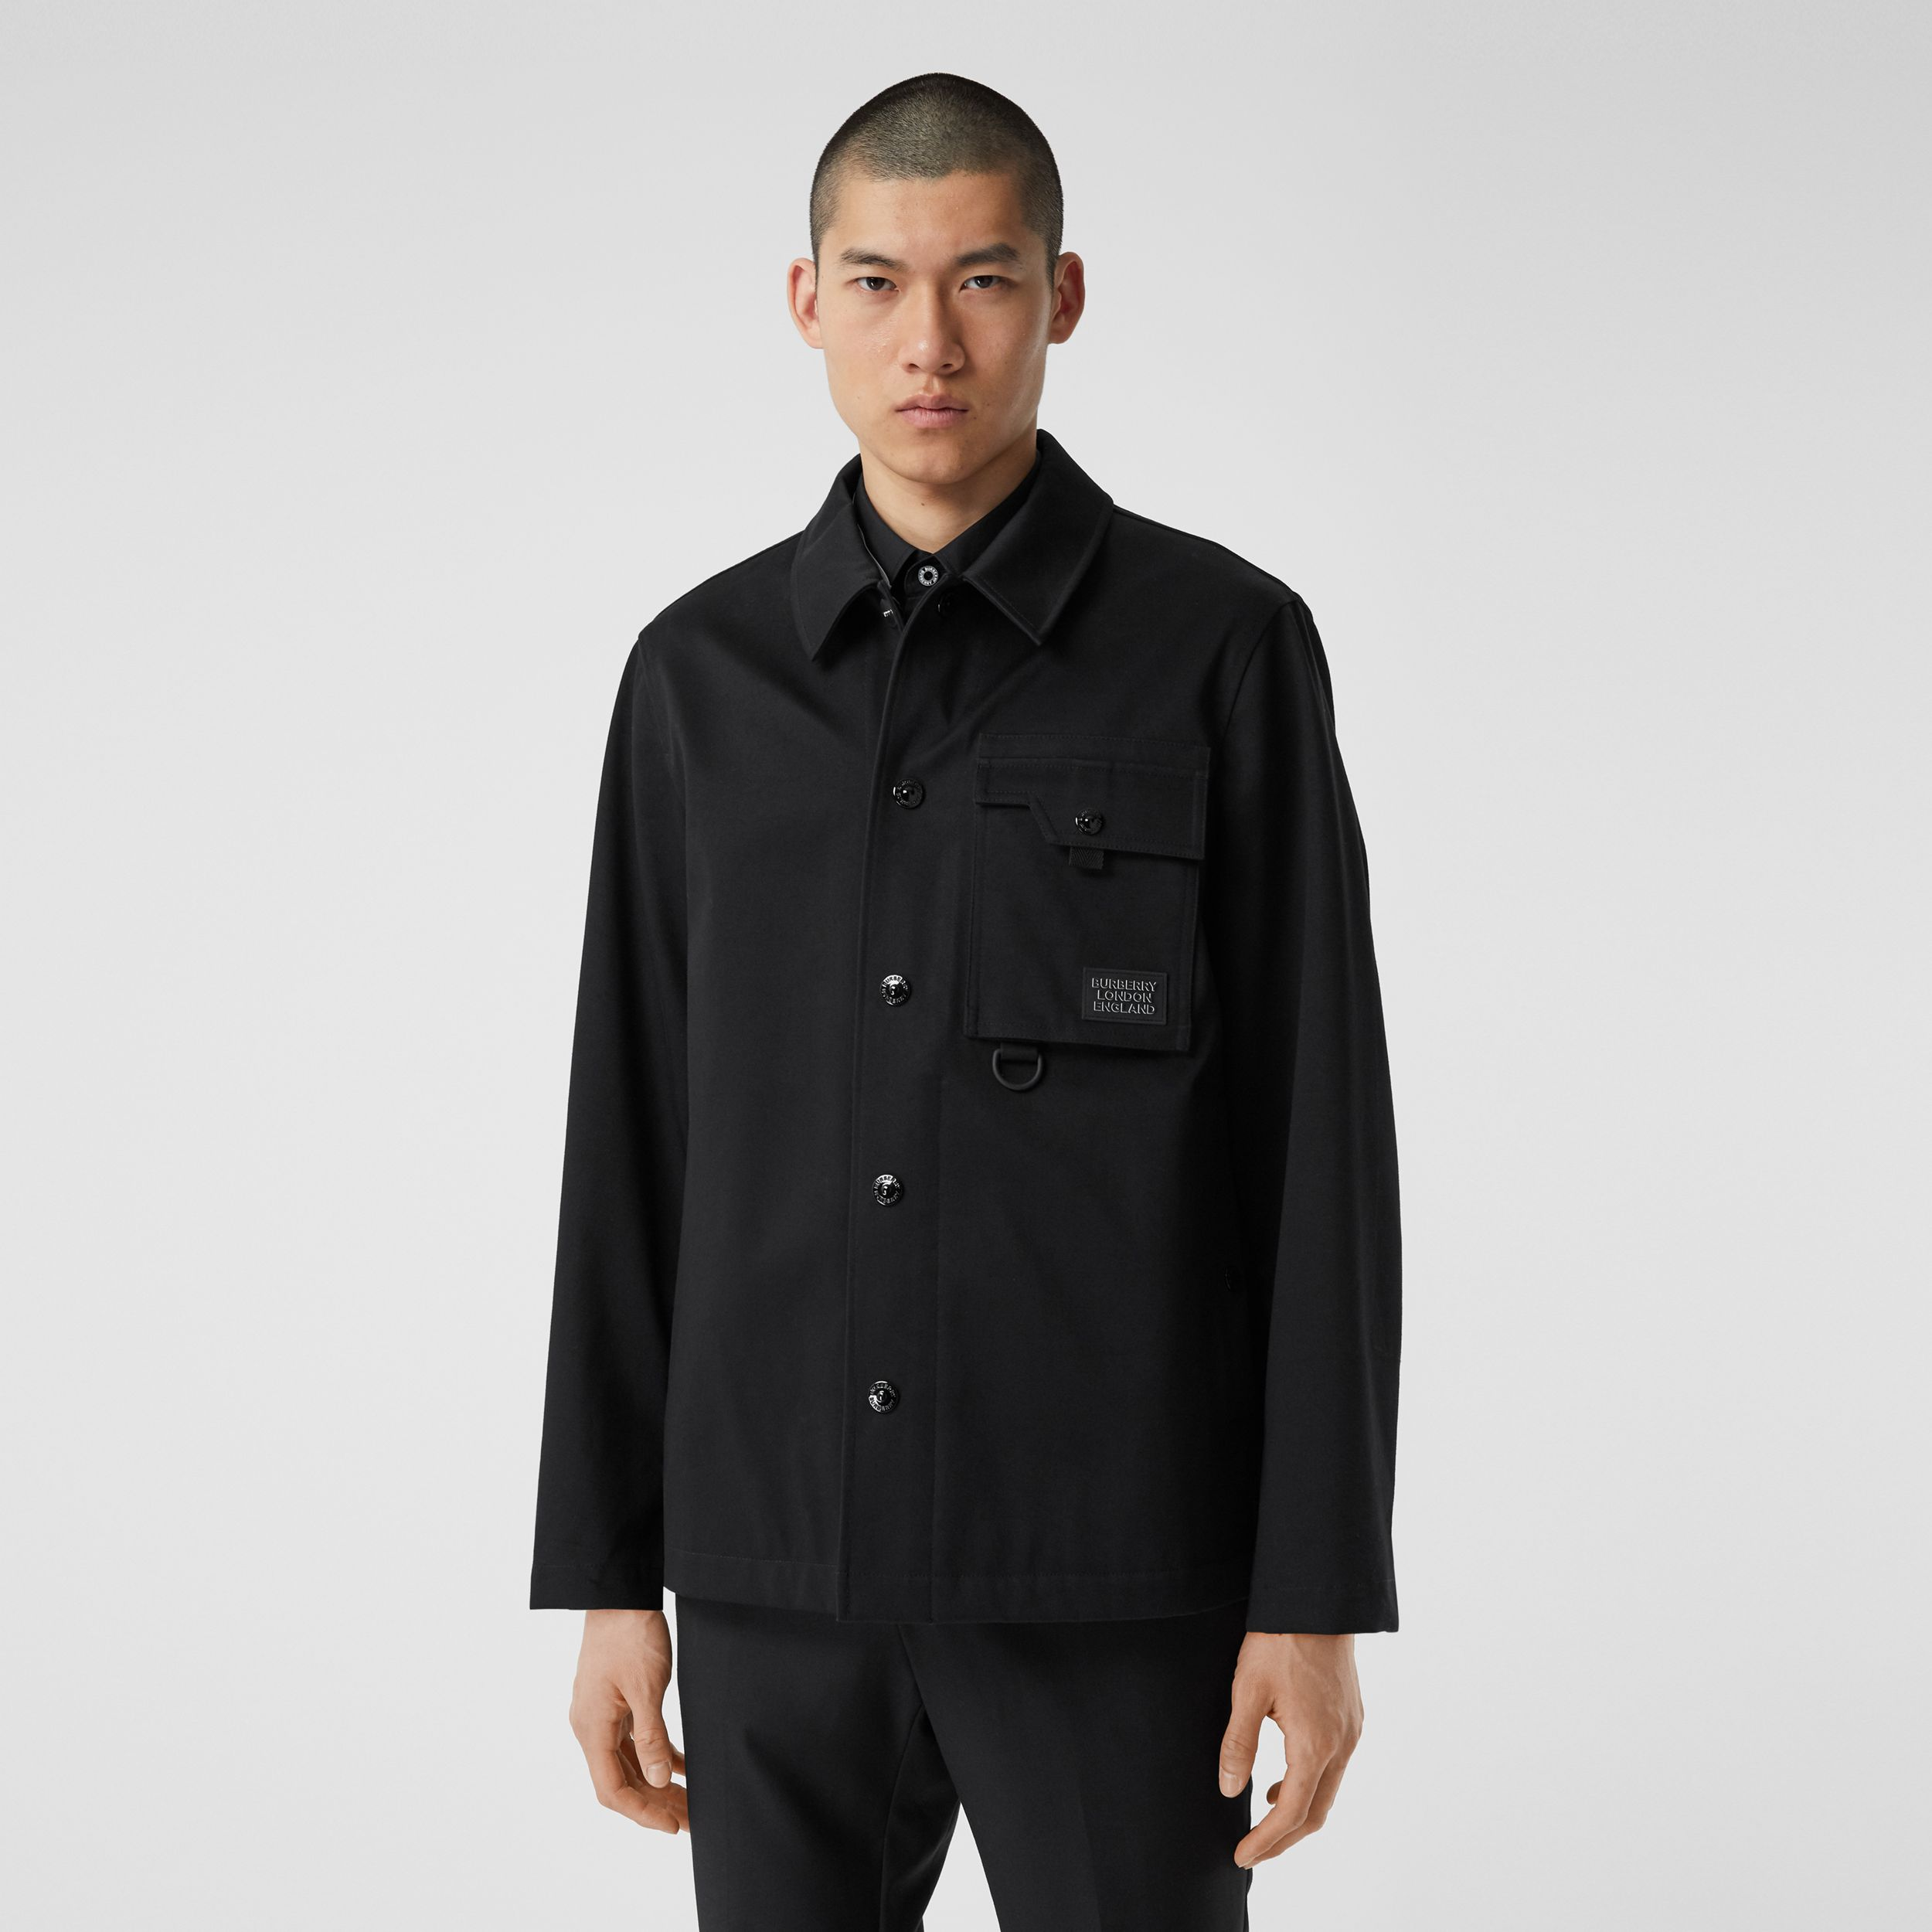 Logo Appliqué Bonded Cotton Sateen Jacket in Black - Men | Burberry - 4